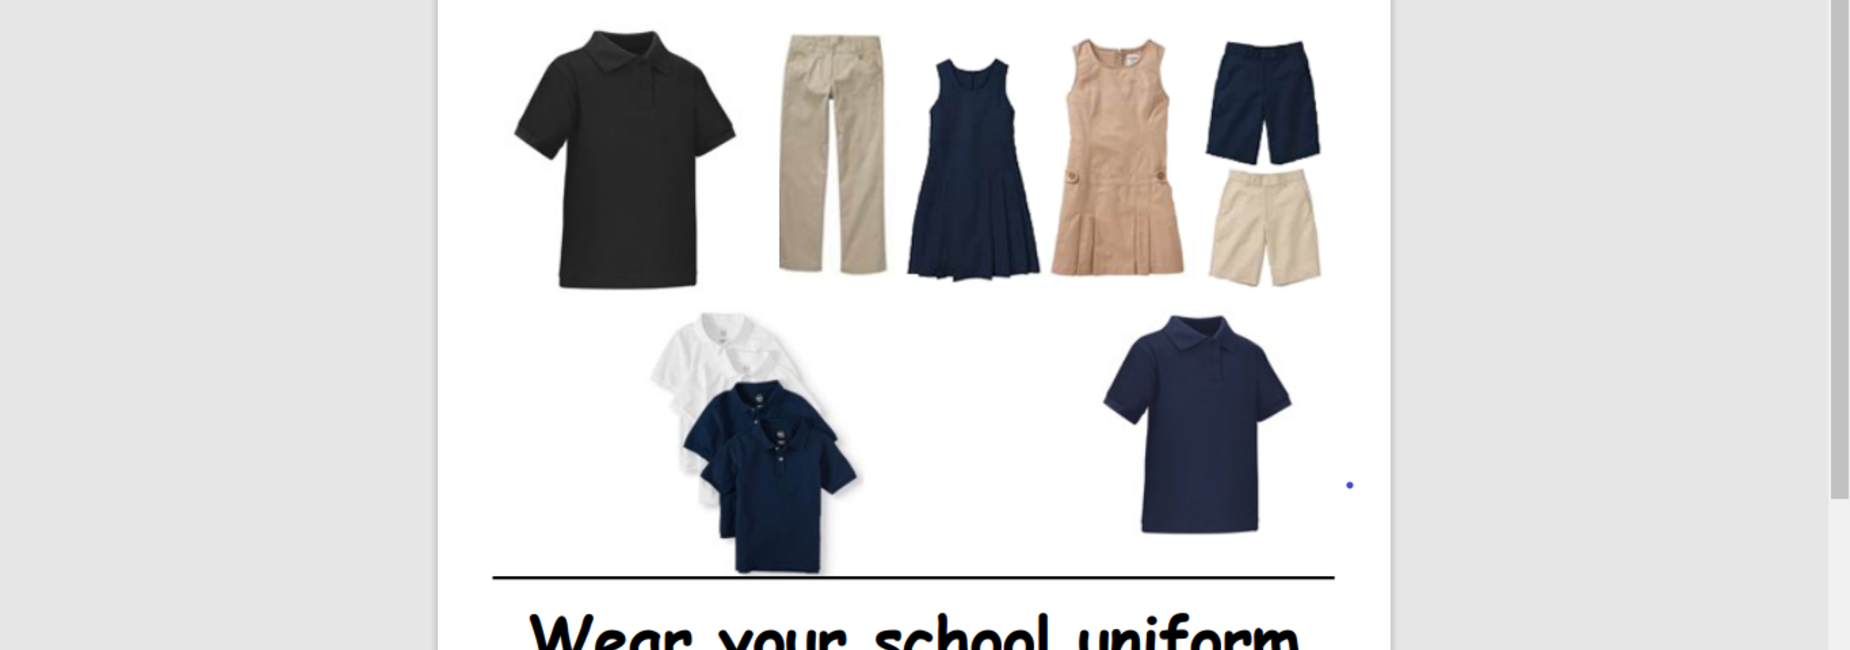 This is a picture of the DSJ school uniform.  Make sure you have your facemask daily with the uniform